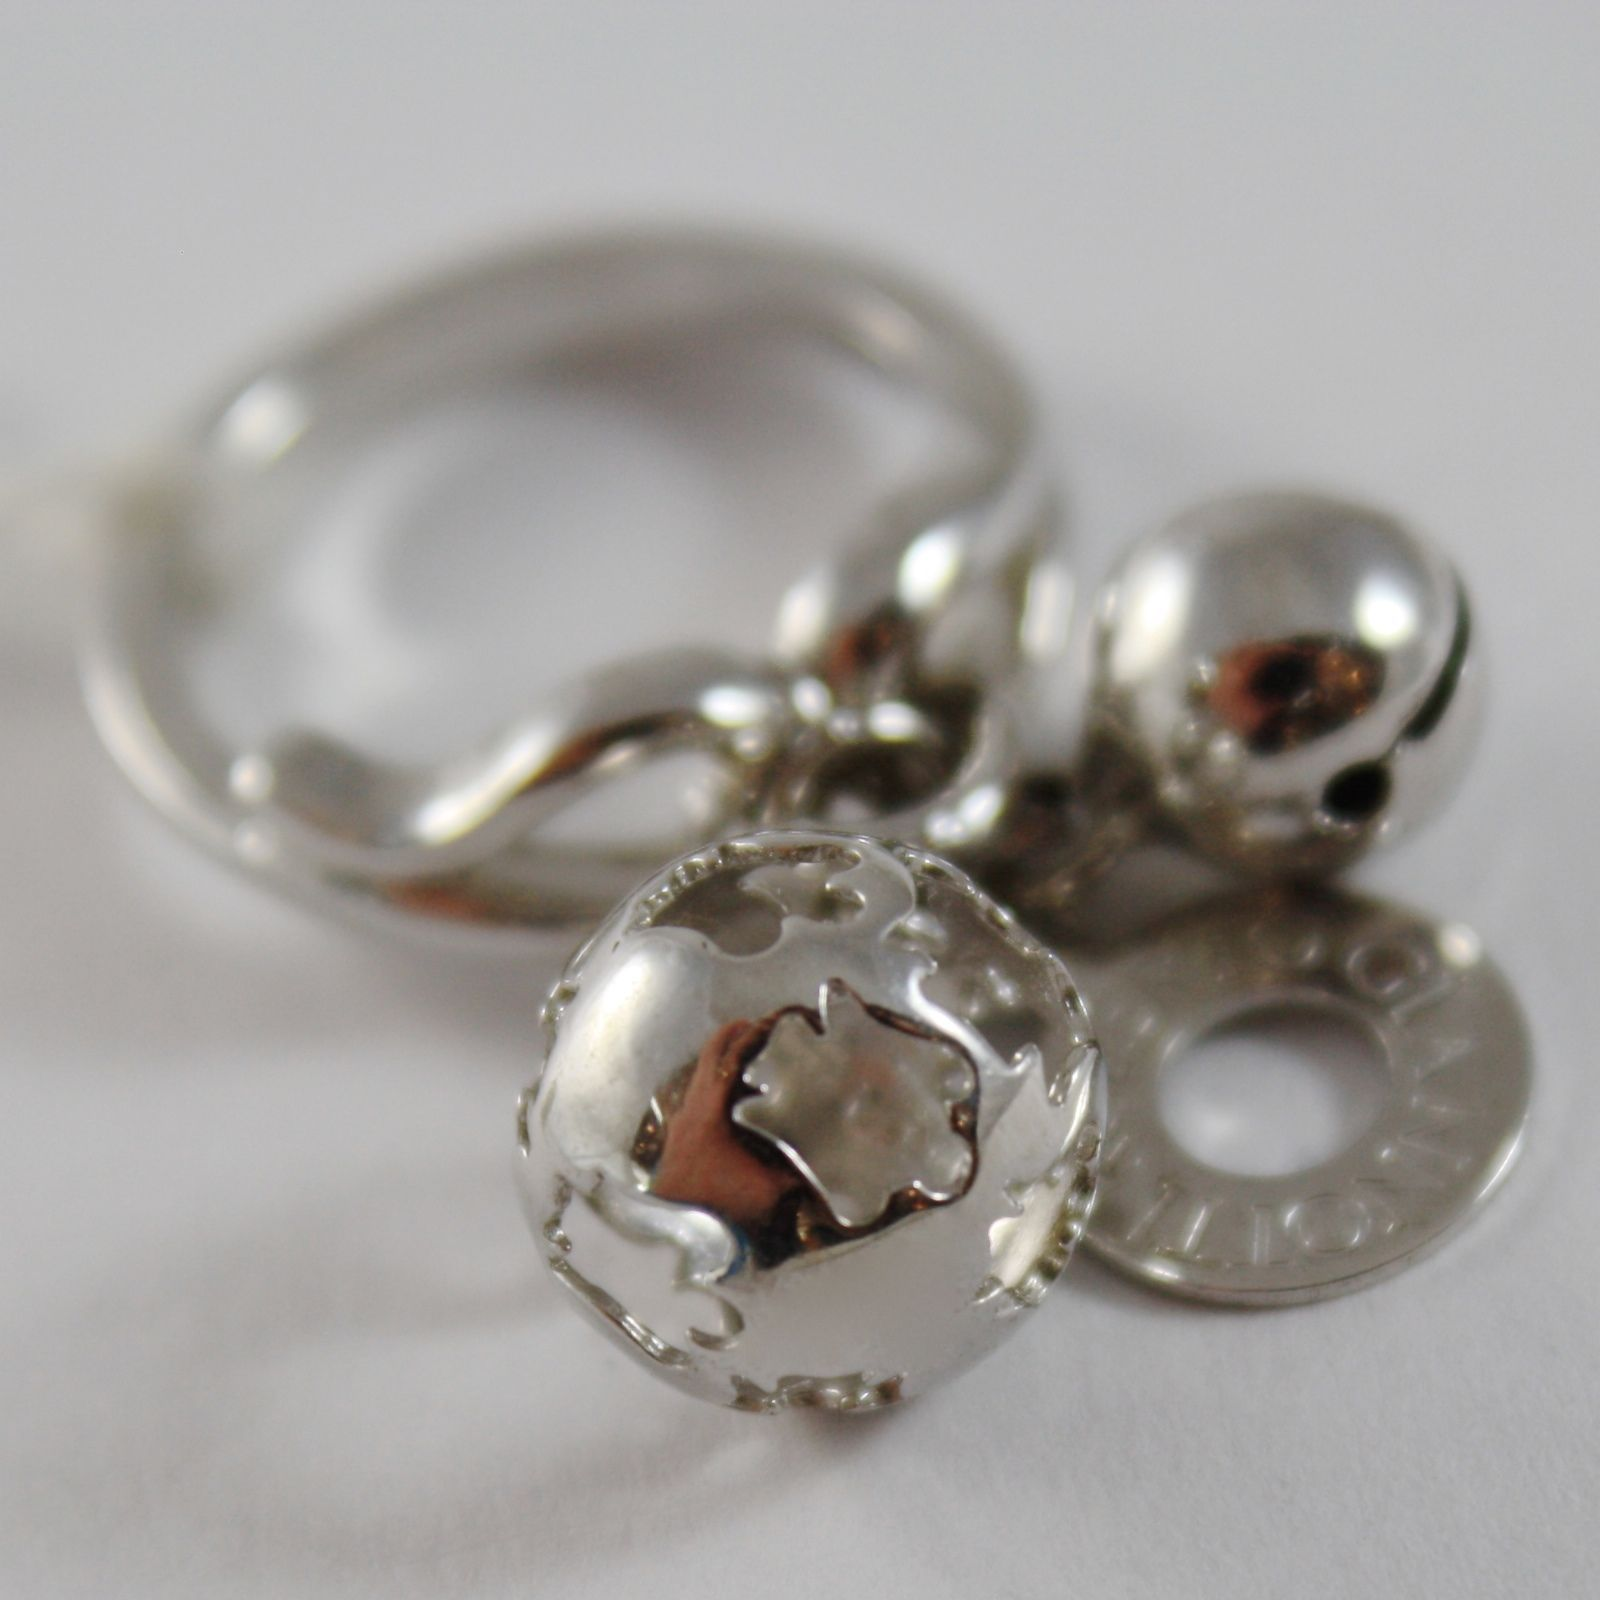 ROBERTO GIANNOTTI 925 SILVER RING 2 HARMONY BALLS ANGEL CALLER MADE IN ITALY